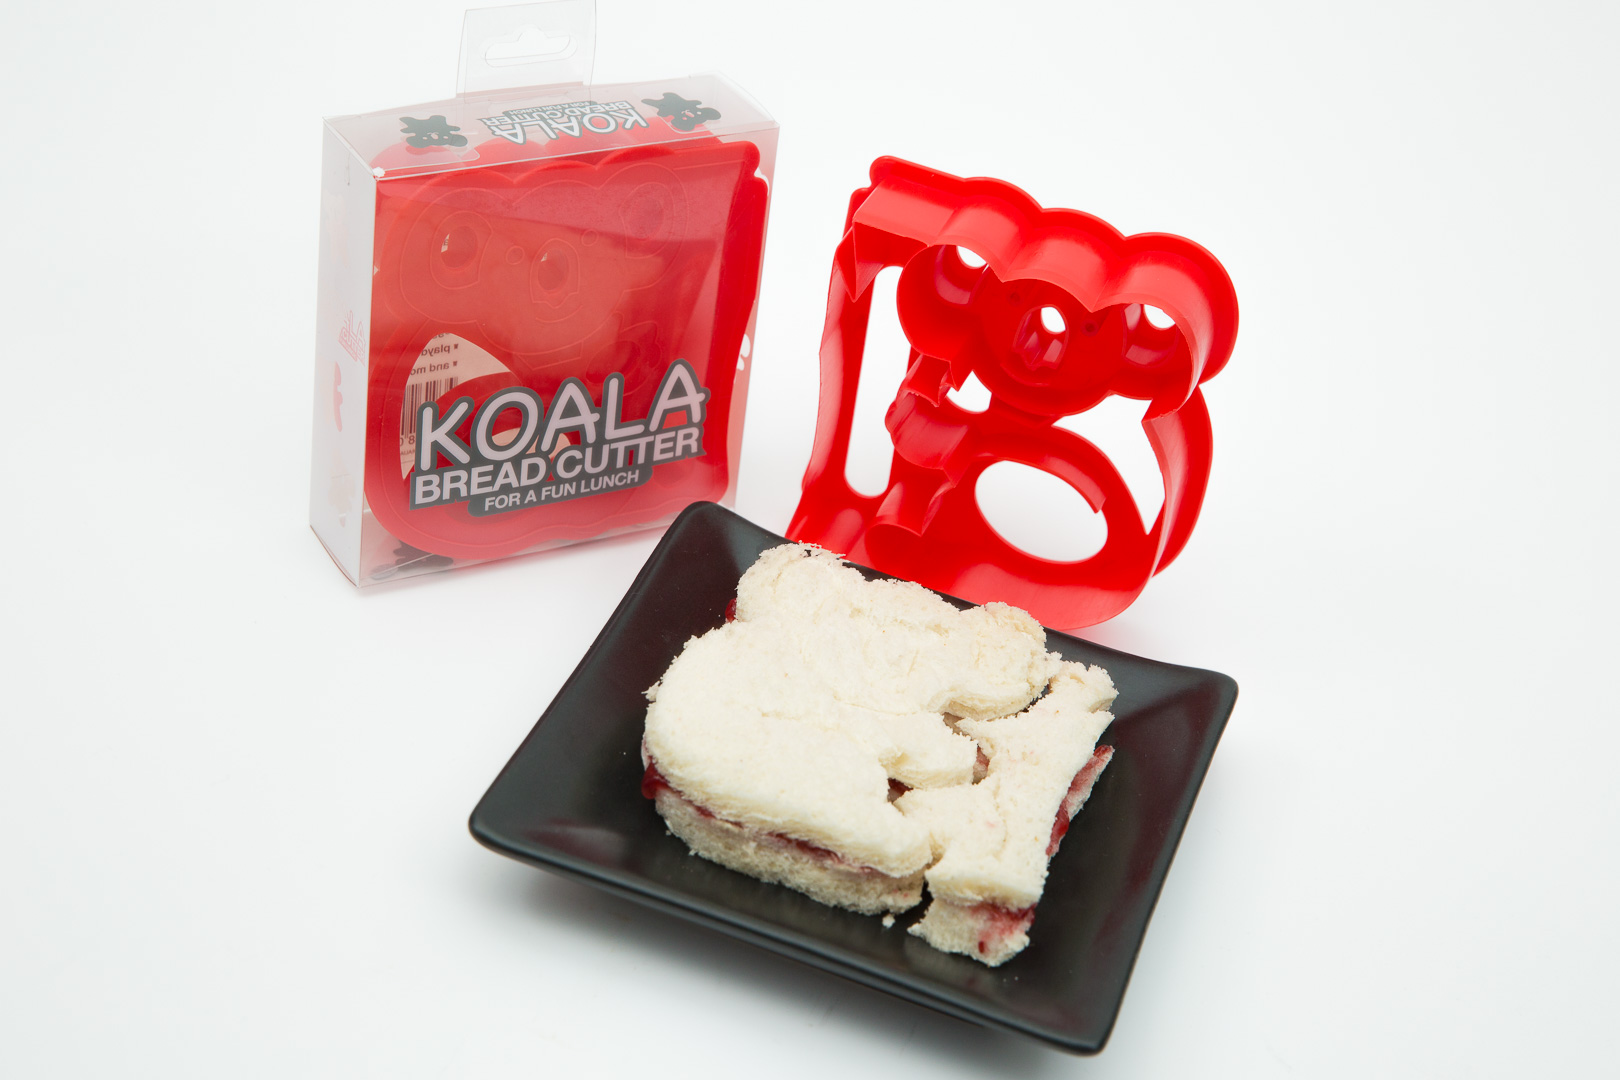 Koala Sandwich Cutter — e3 products - explore engage enjoy